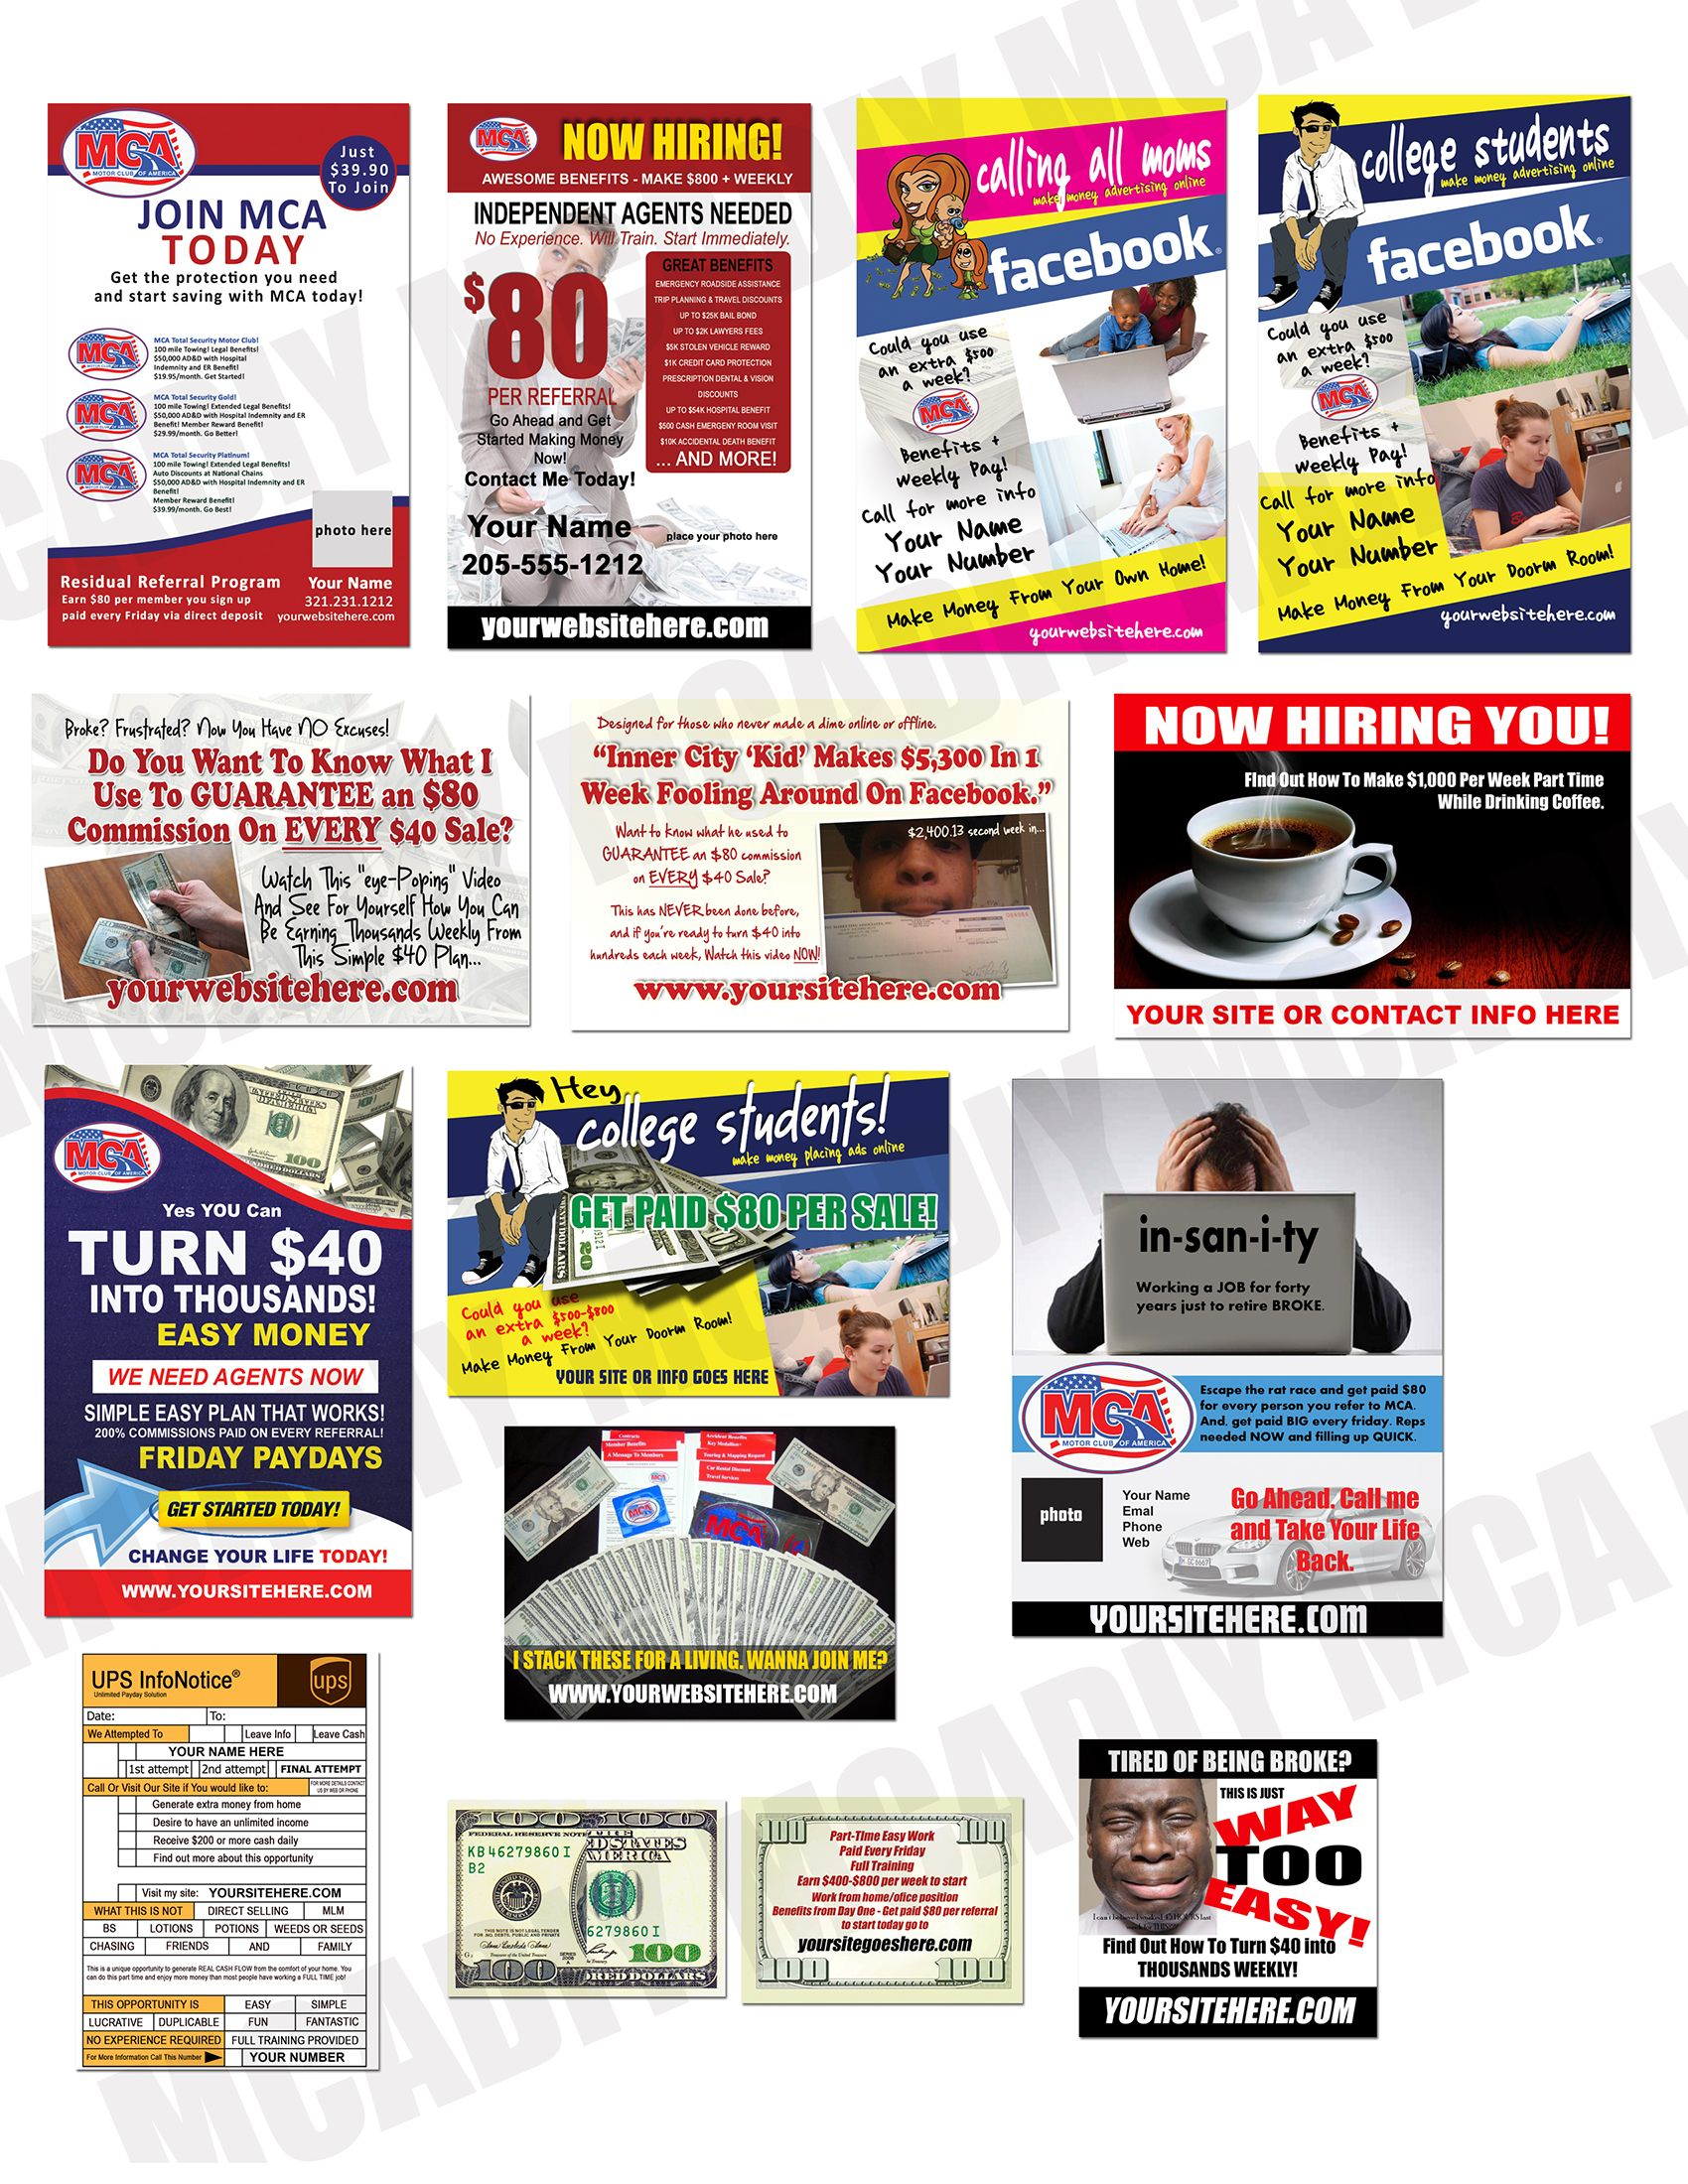 mcadiy com offline marketing tools and materials such as dozens get your mca flyers printed today grow your mca business print your flyers